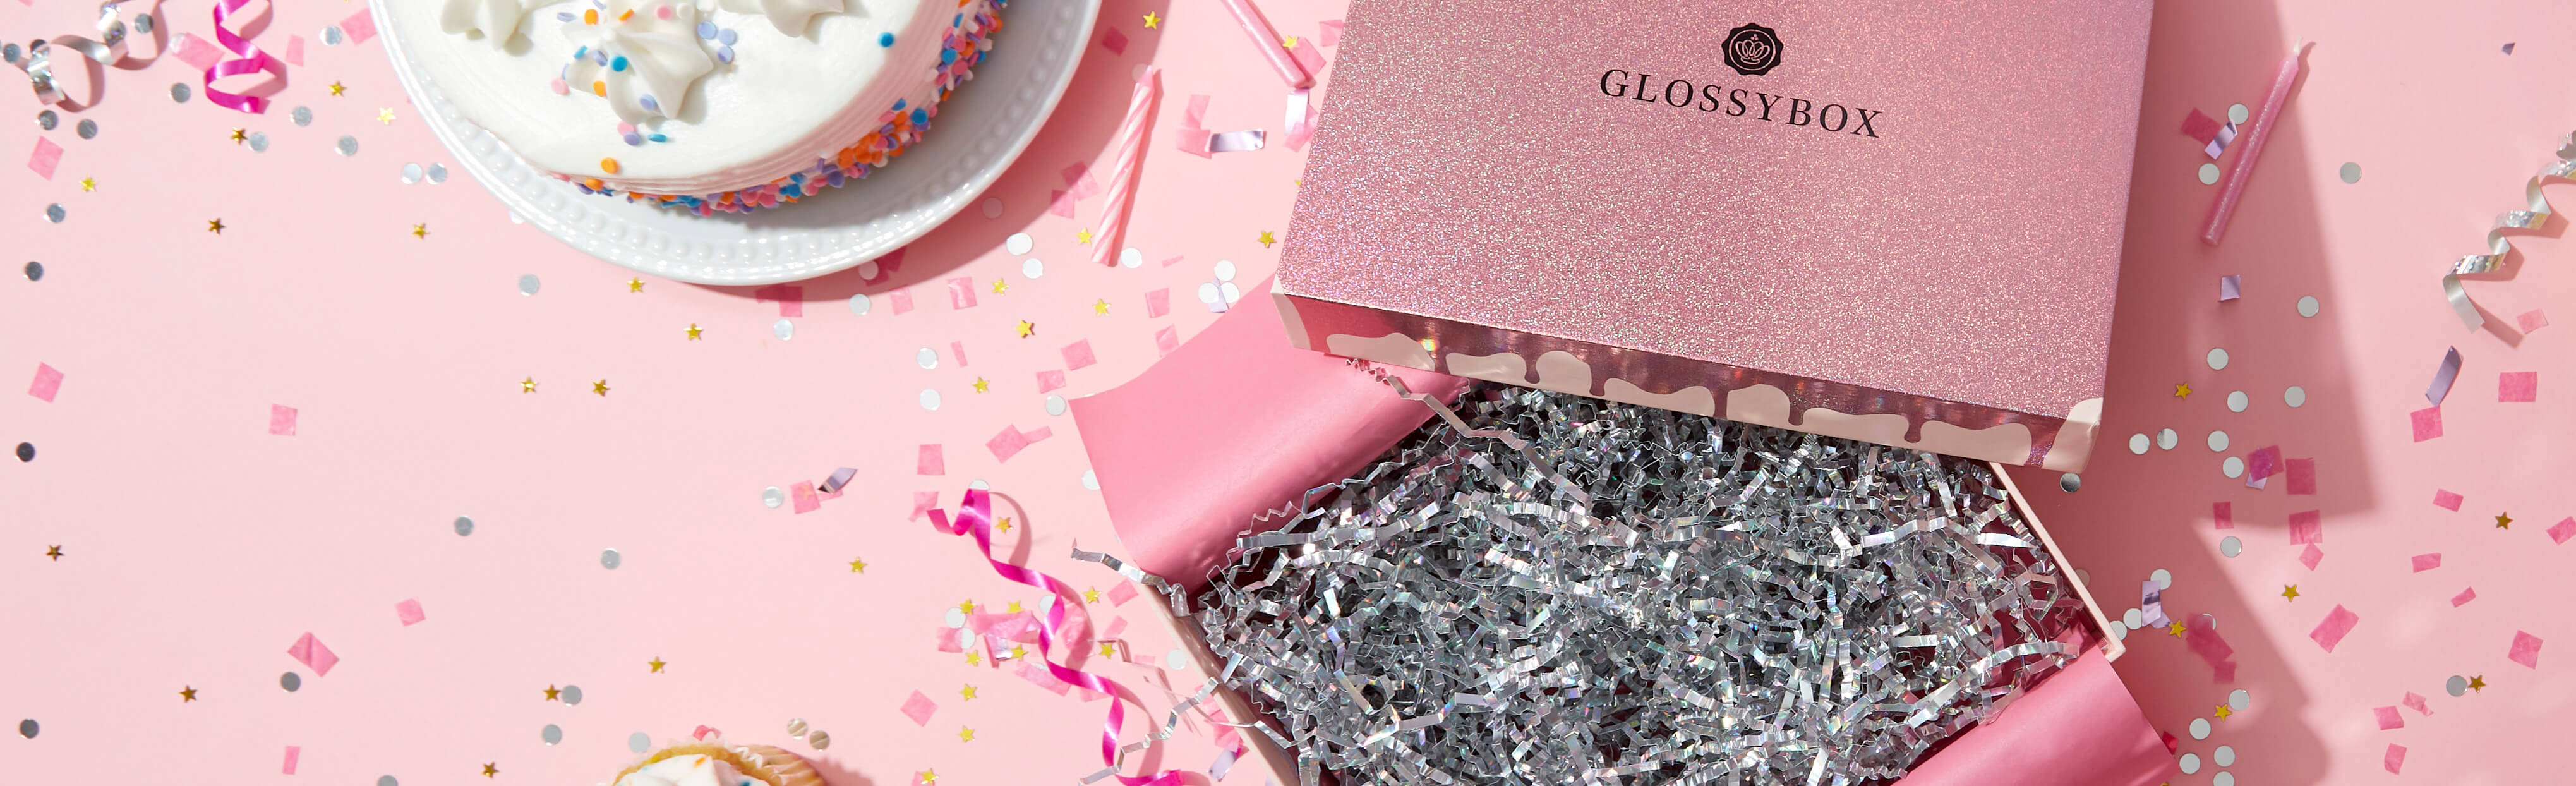 6a5a9b50f9b GLOSSYBOX Monthly Plans & Subscriptions for Women | Glossybox